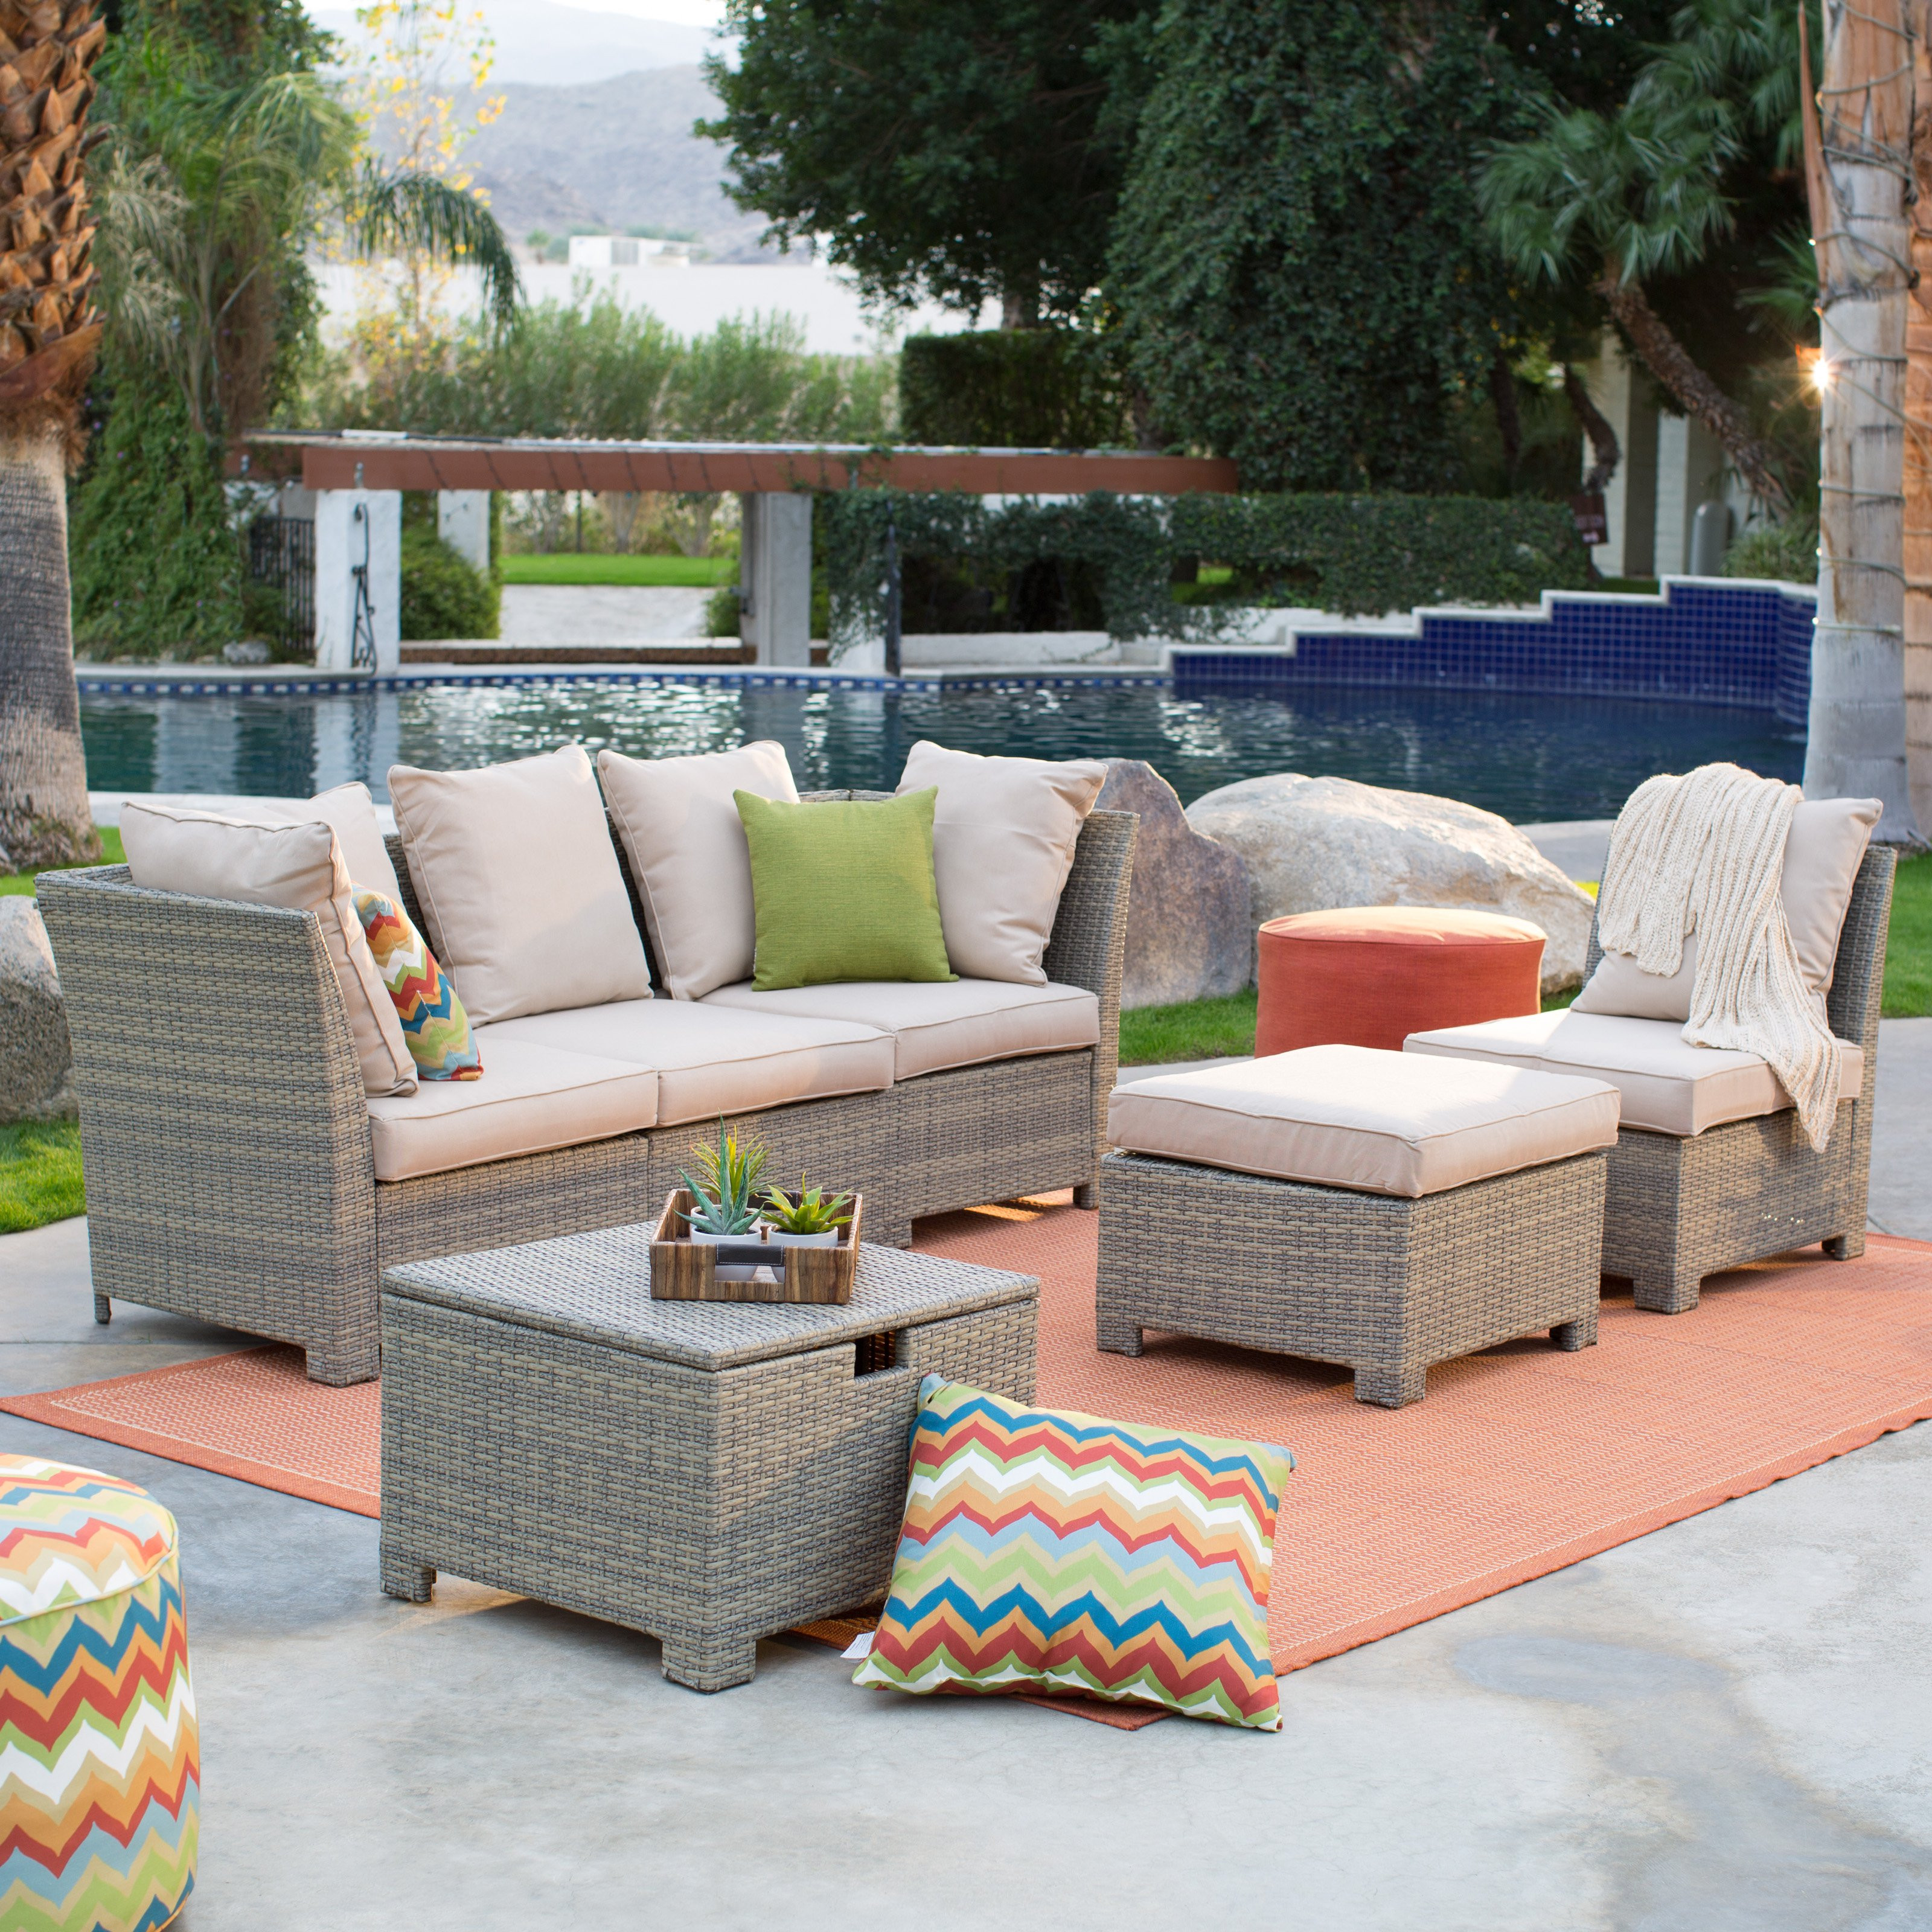 Best ideas about Patio Furniture Sets . Save or Pin Coral Coast South Isle All Weather Wicker Natural Outdoor Now.